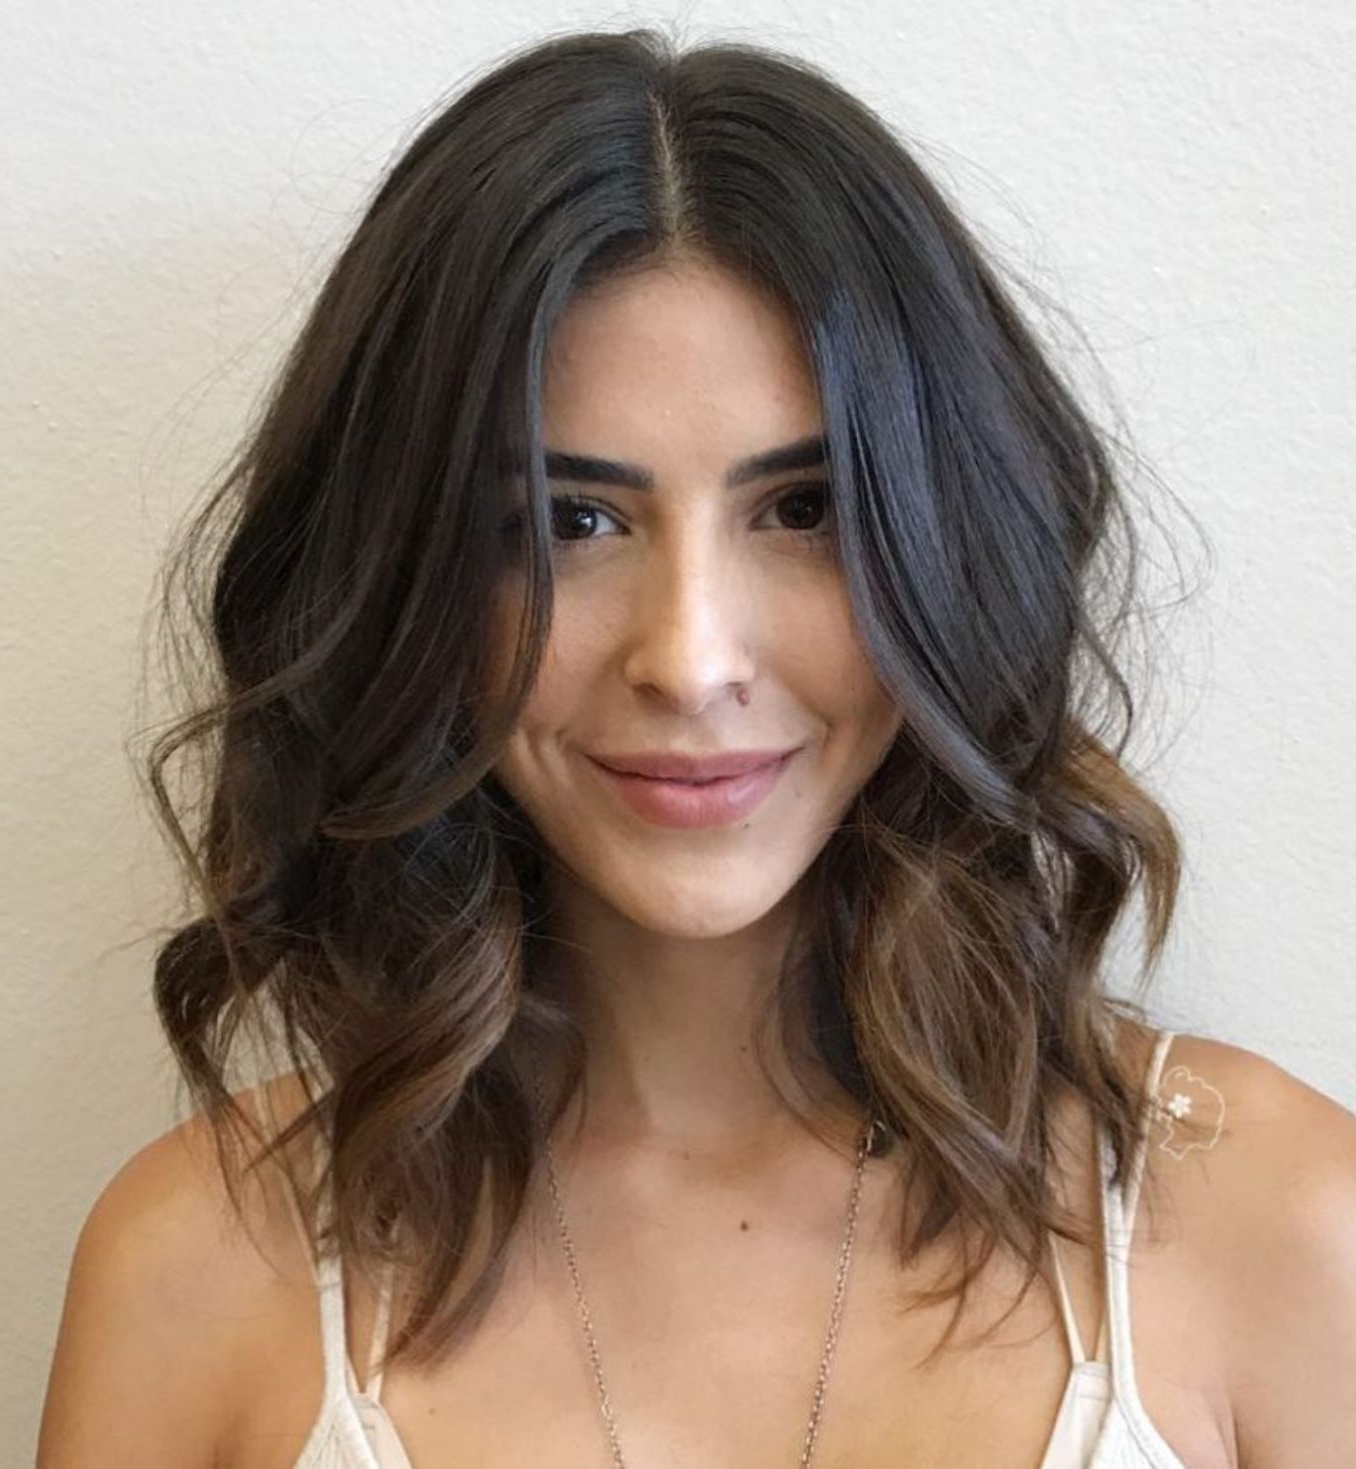 50 Gorgeous Wavy Bob Hairstyles With An Extra Touch Of Femininity Within Loosely Waved Messy Brunette Bob Hairstyles (View 10 of 25)